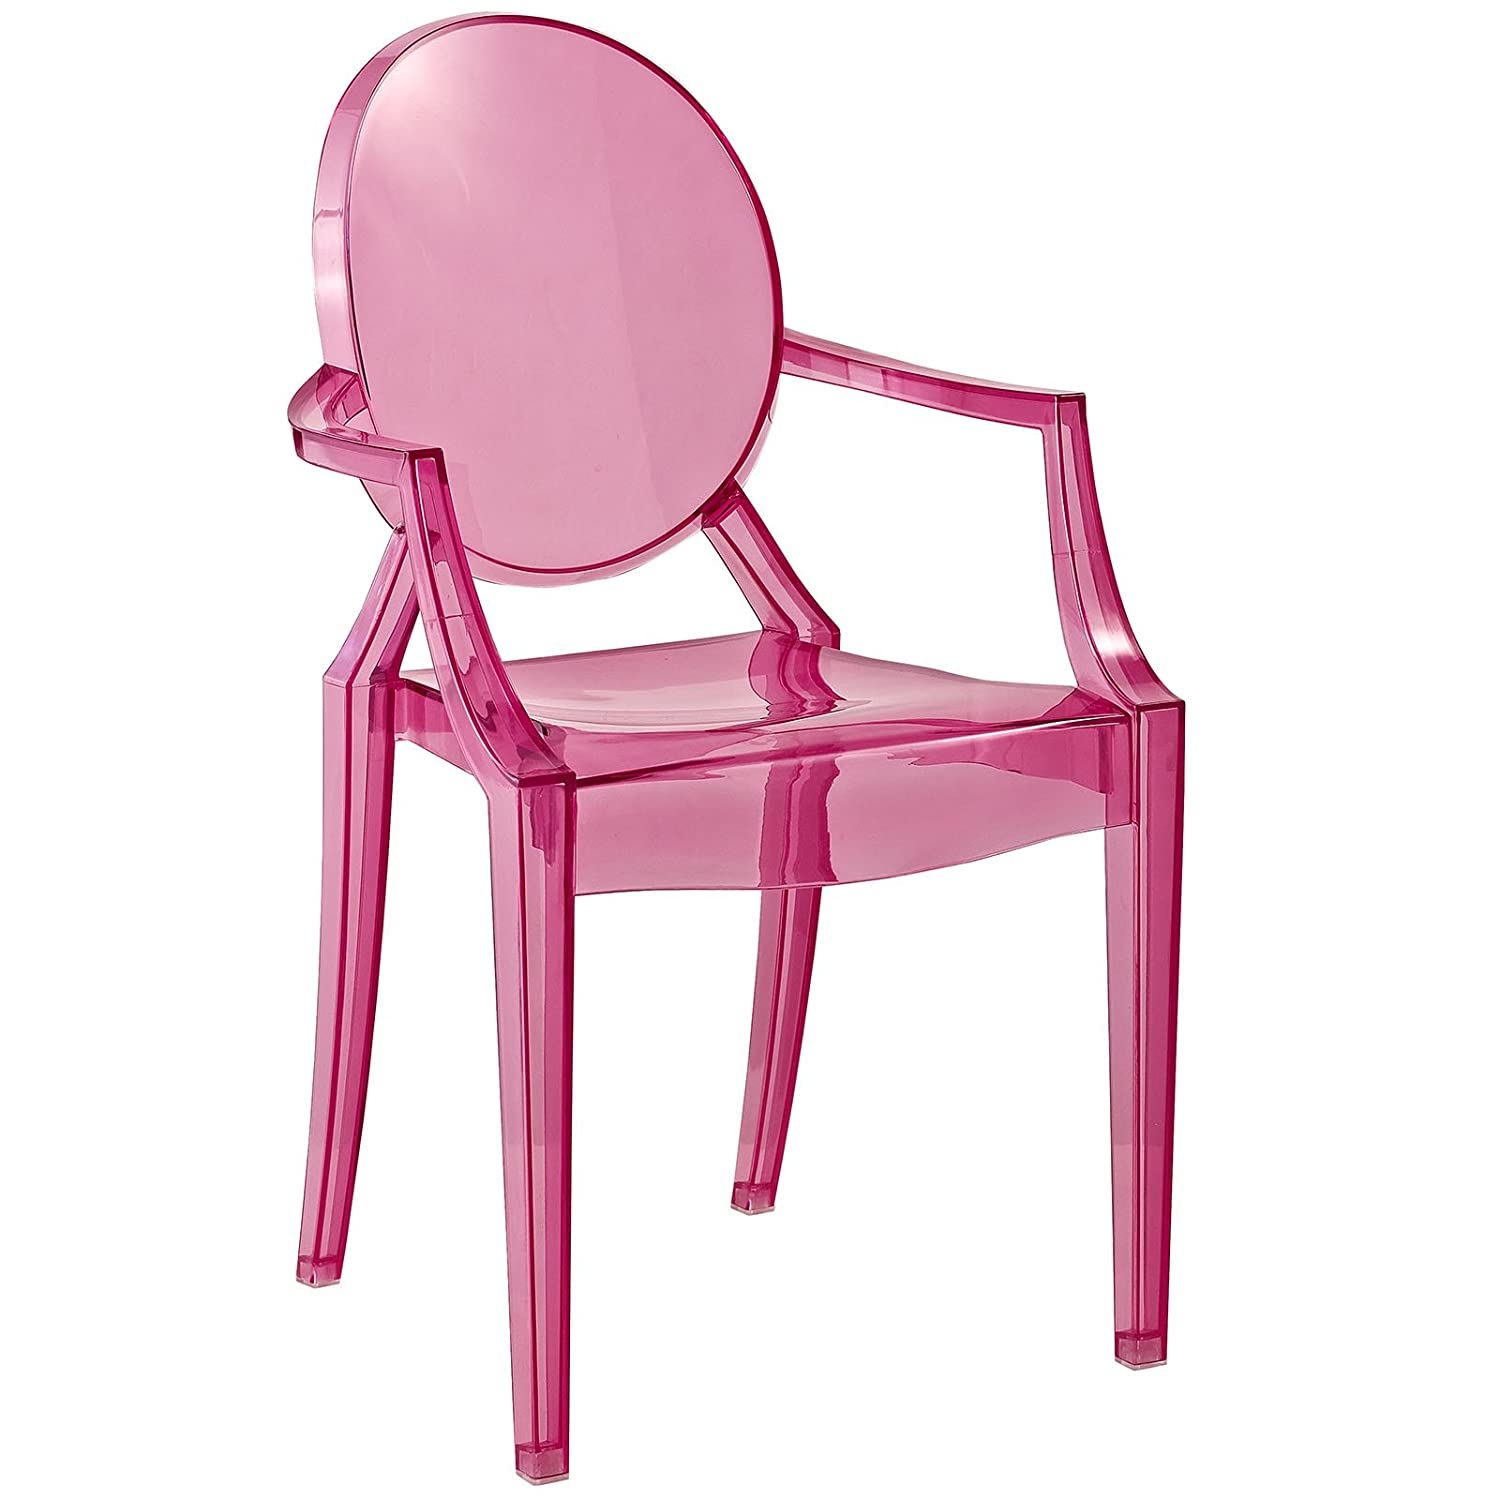 Modway Casper Kids Chair in Clear Modway Inc. EEI-121K-CLR